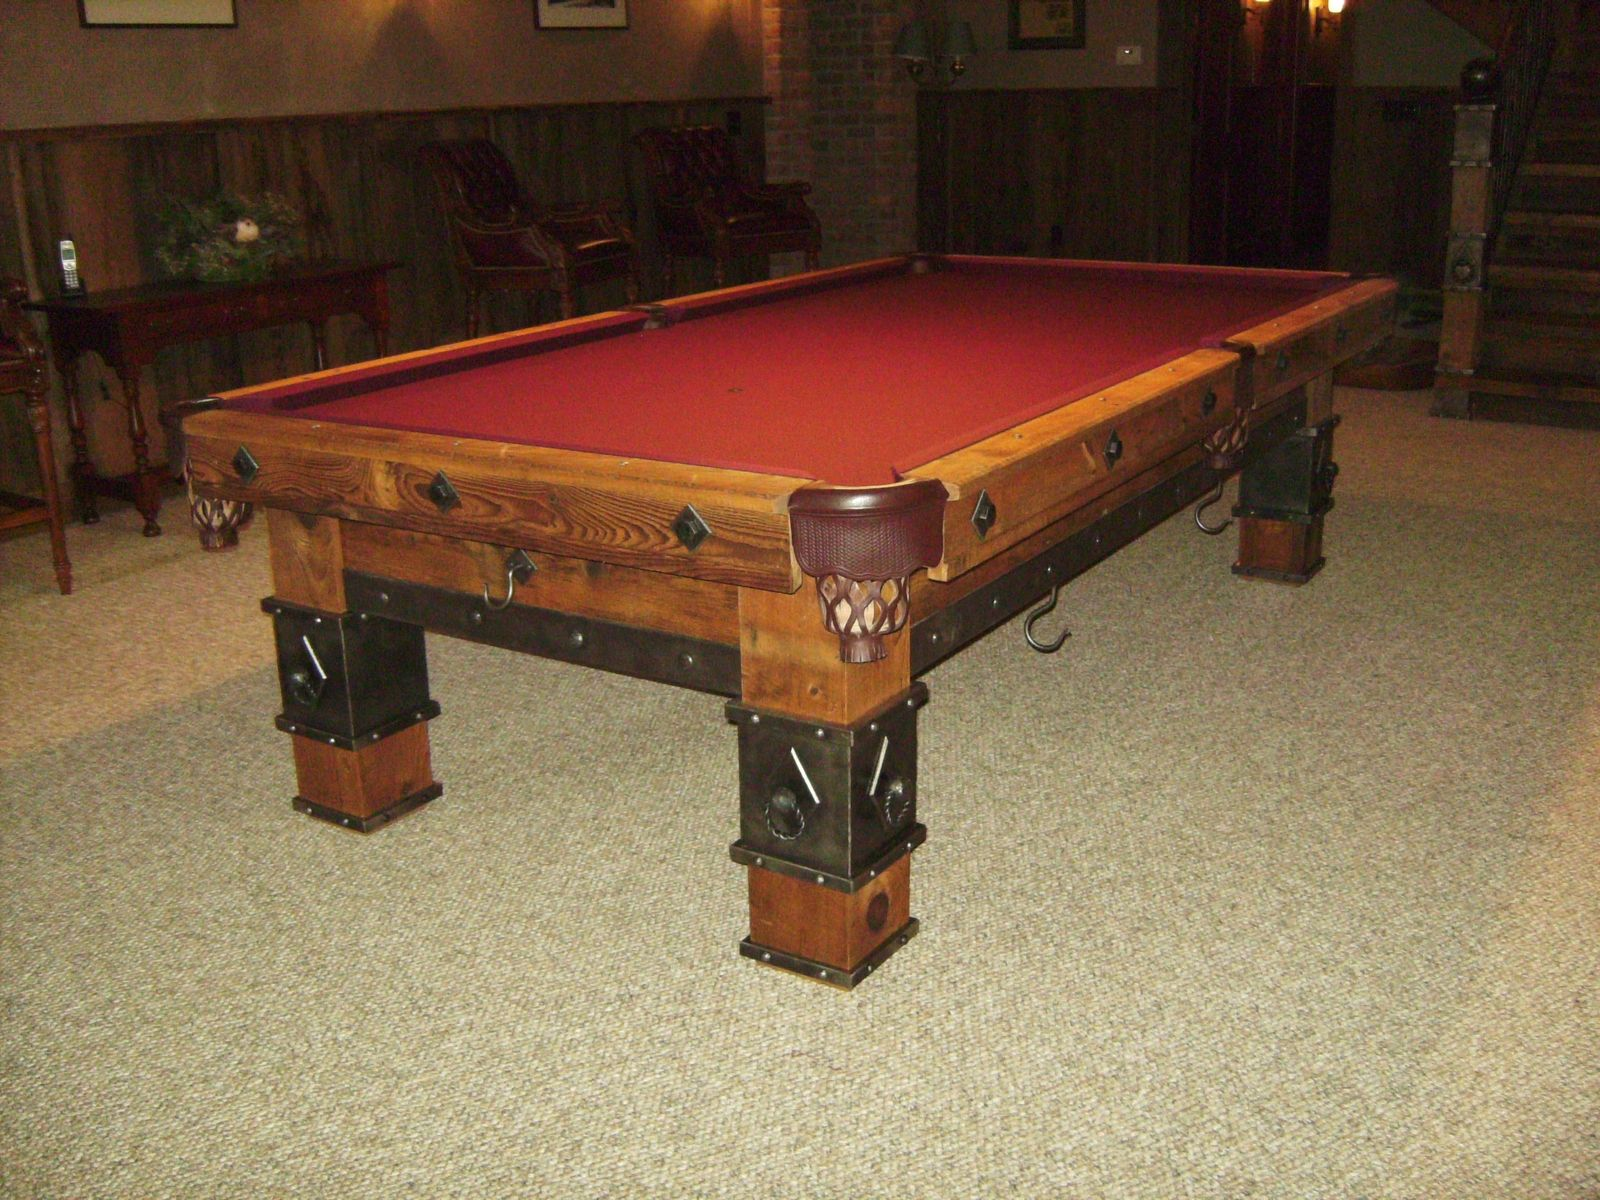 Custom Made Pool Table by Braddee Metal Works & Design | CustomMade.com